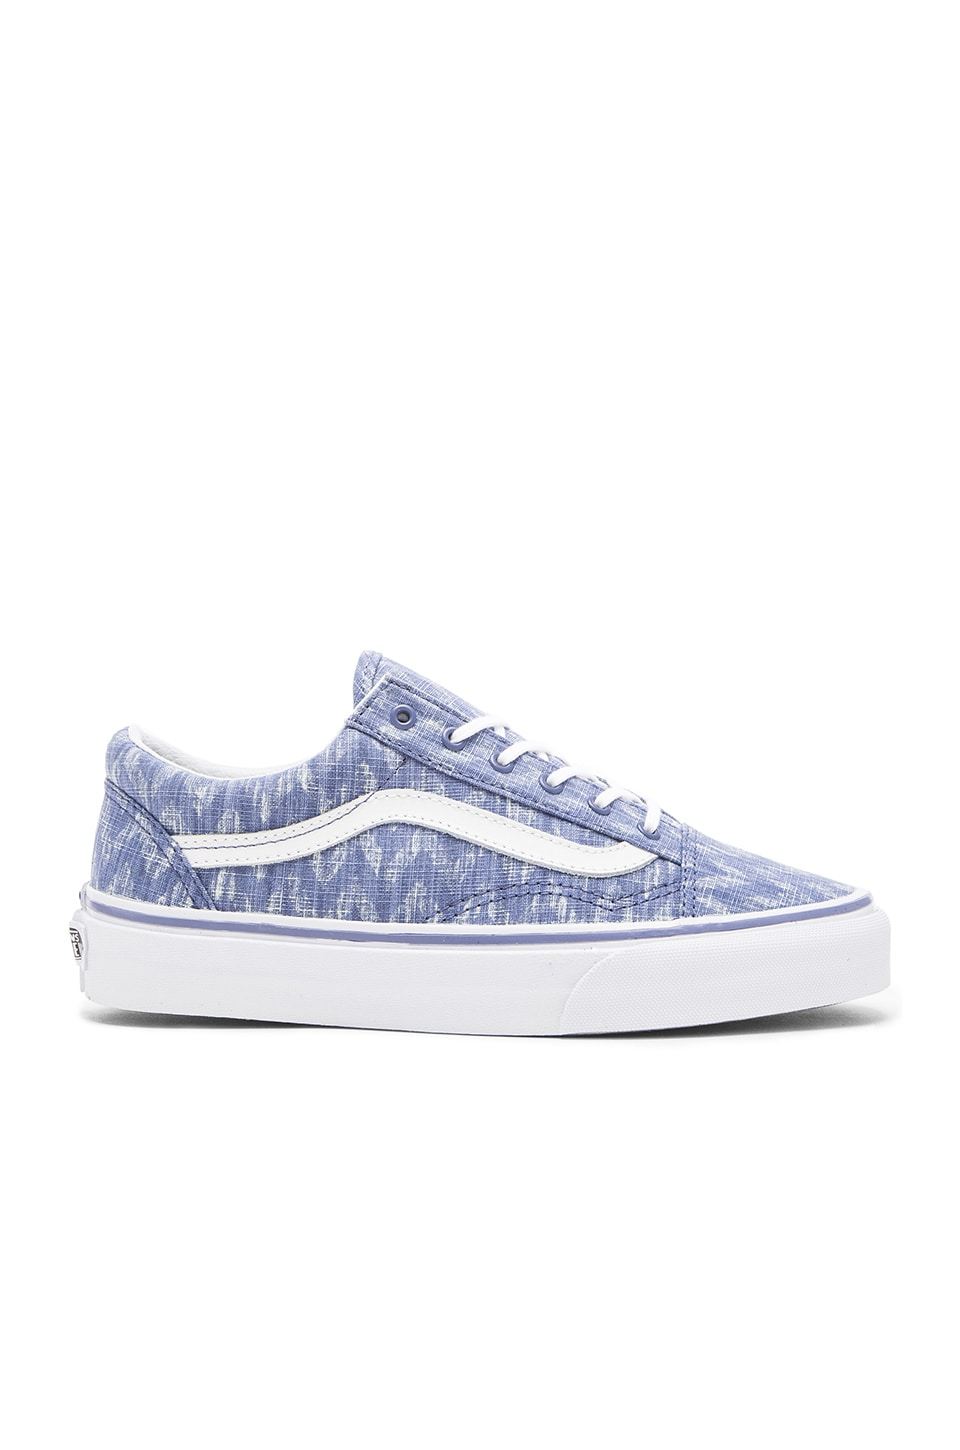 Vans Old Skool Denim Chevron Sneaker in Blue & True White